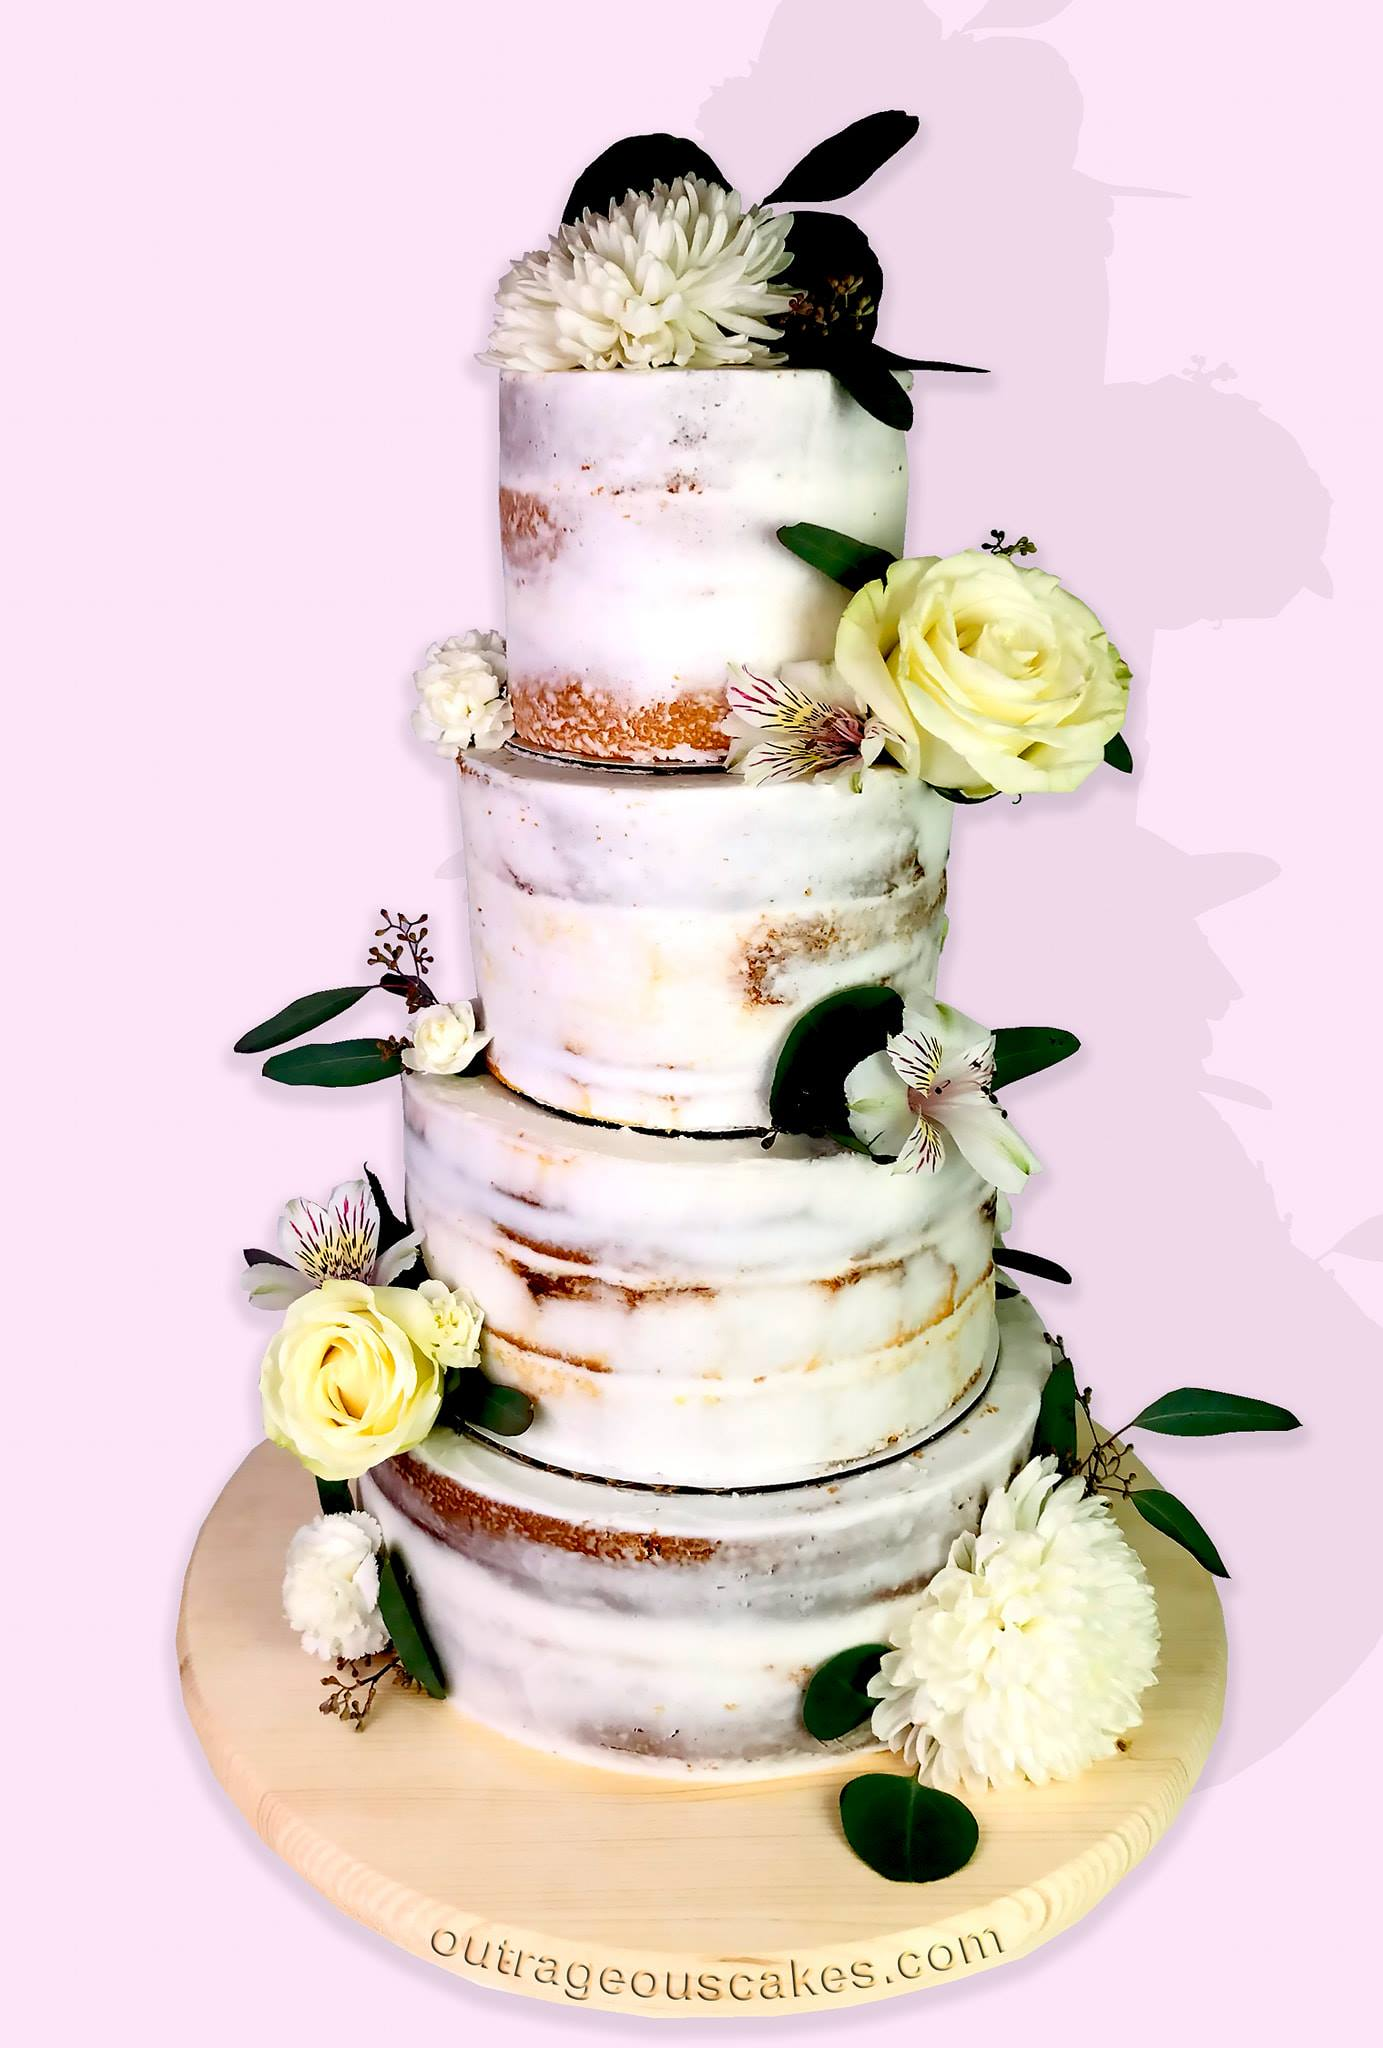 4 Tiered Semi-naked Cake